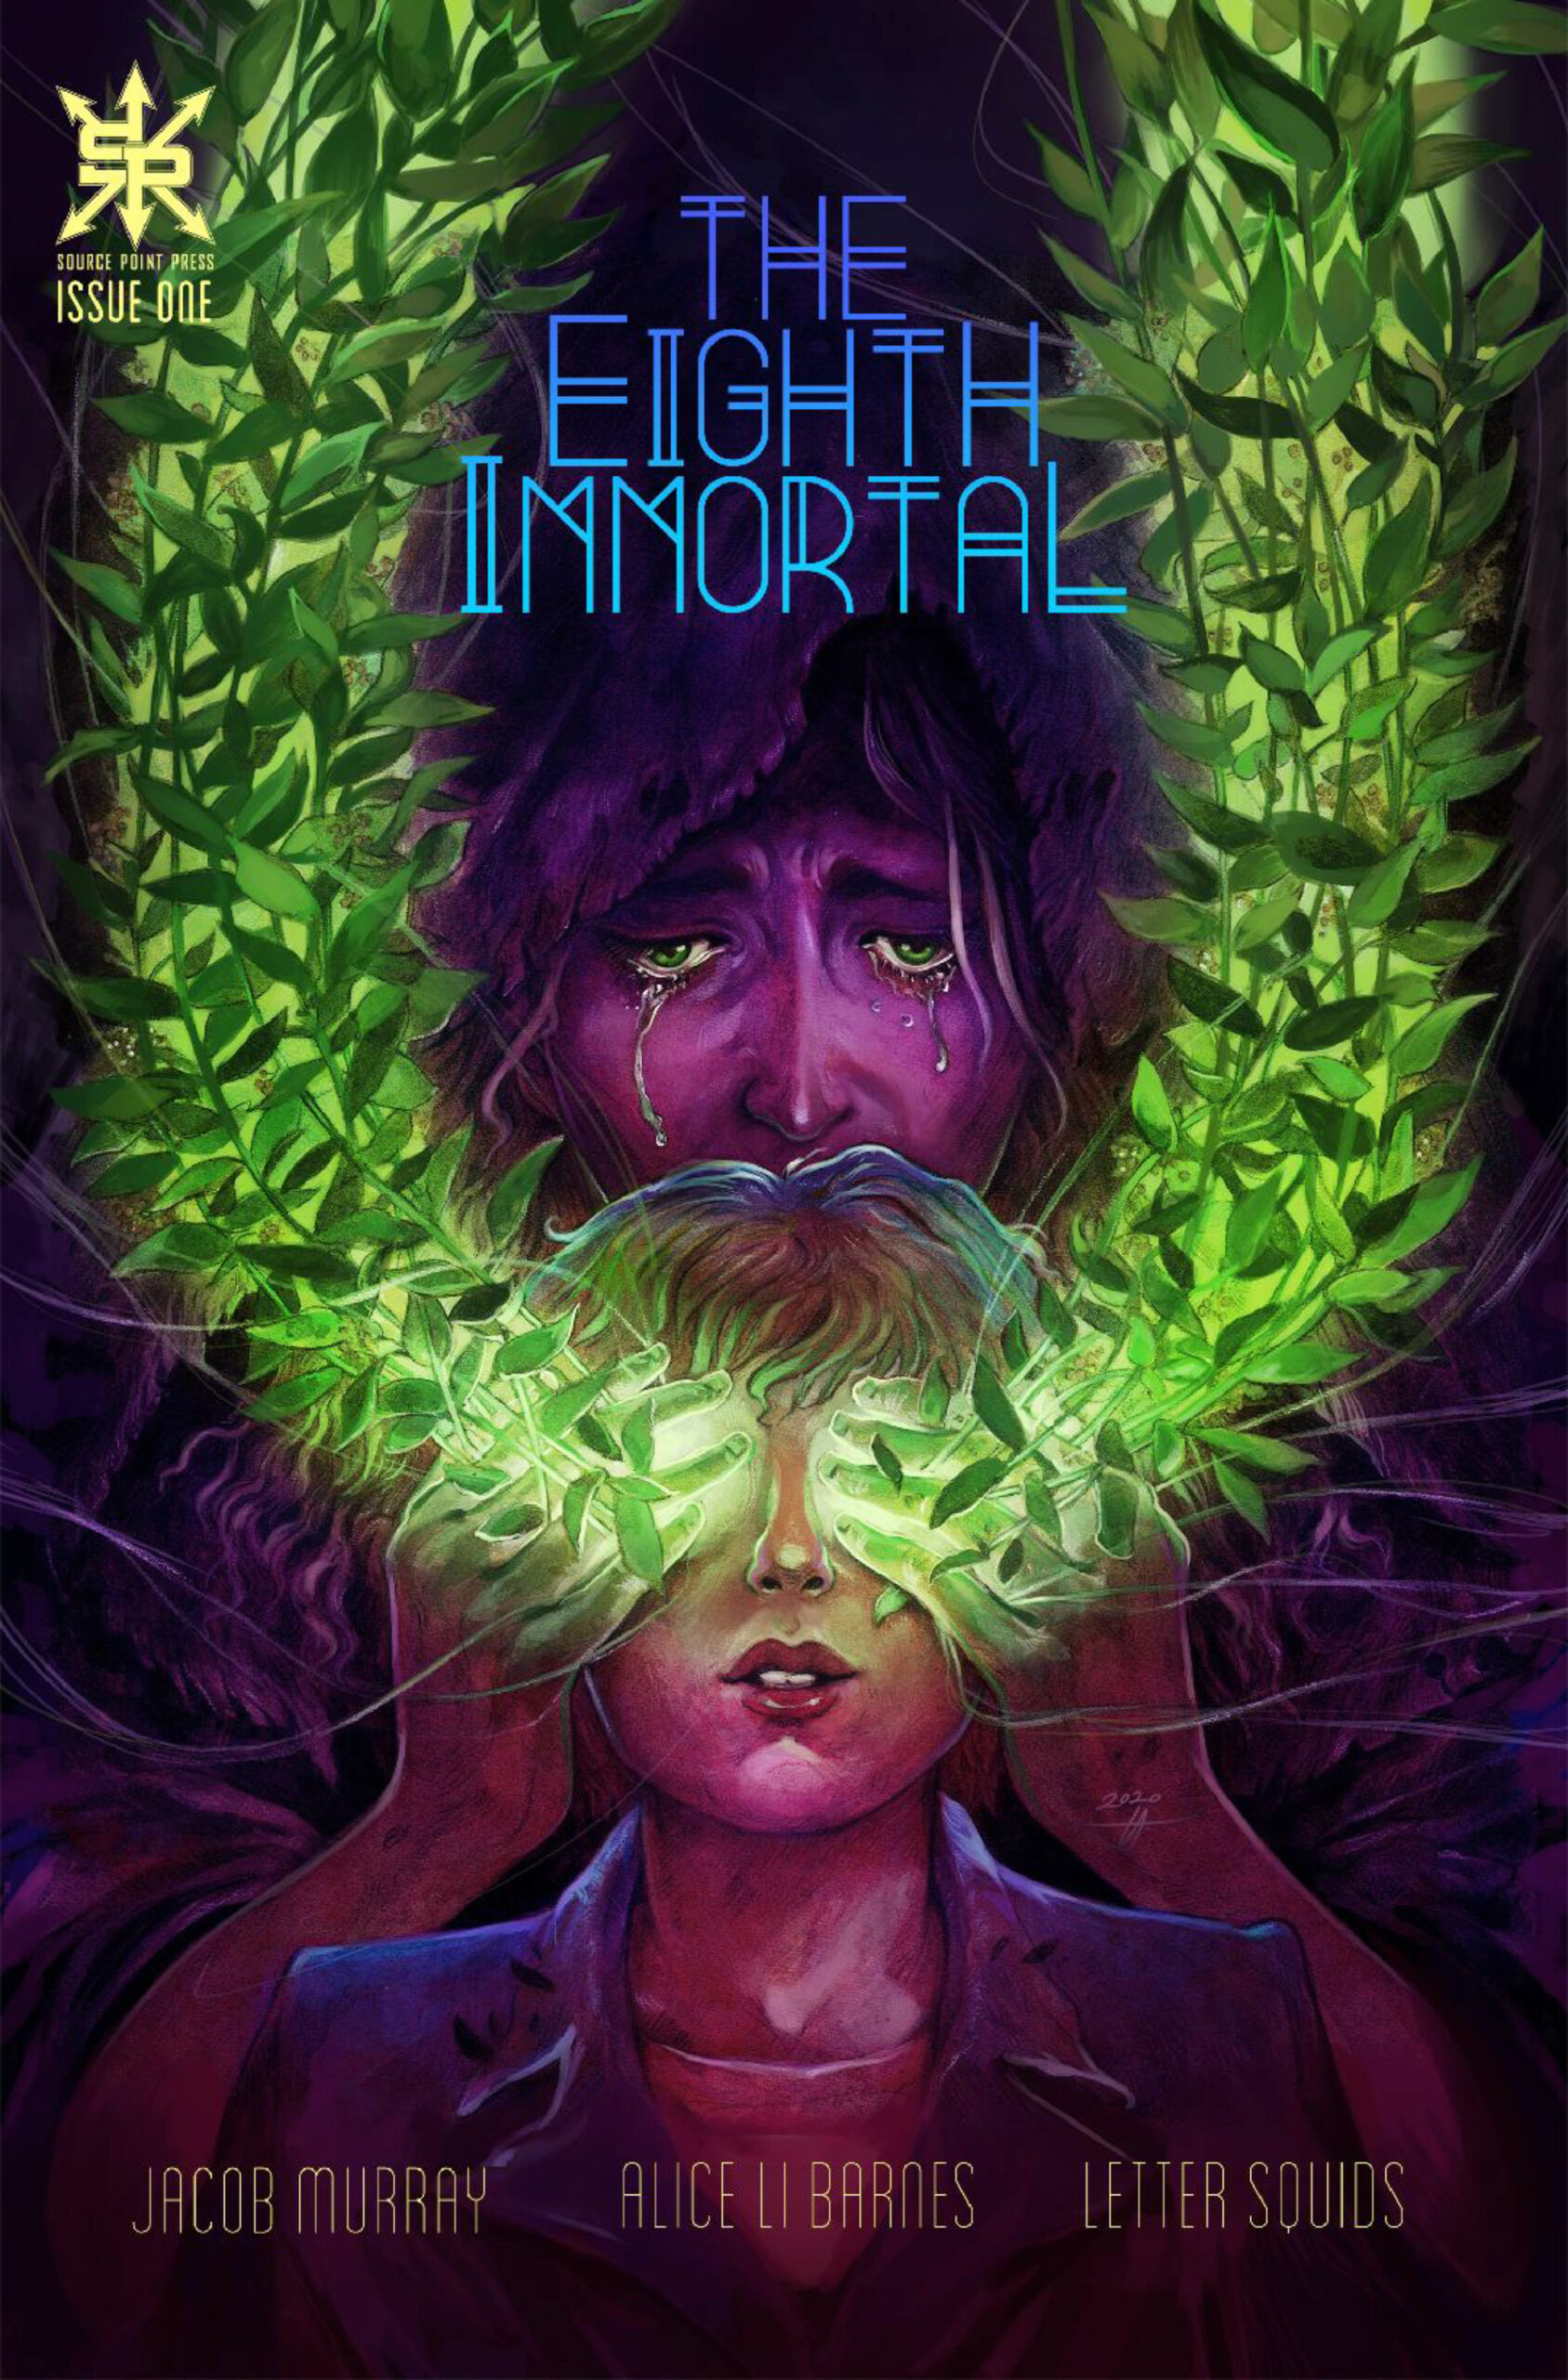 This is The Eighth Immortal – First Comics News